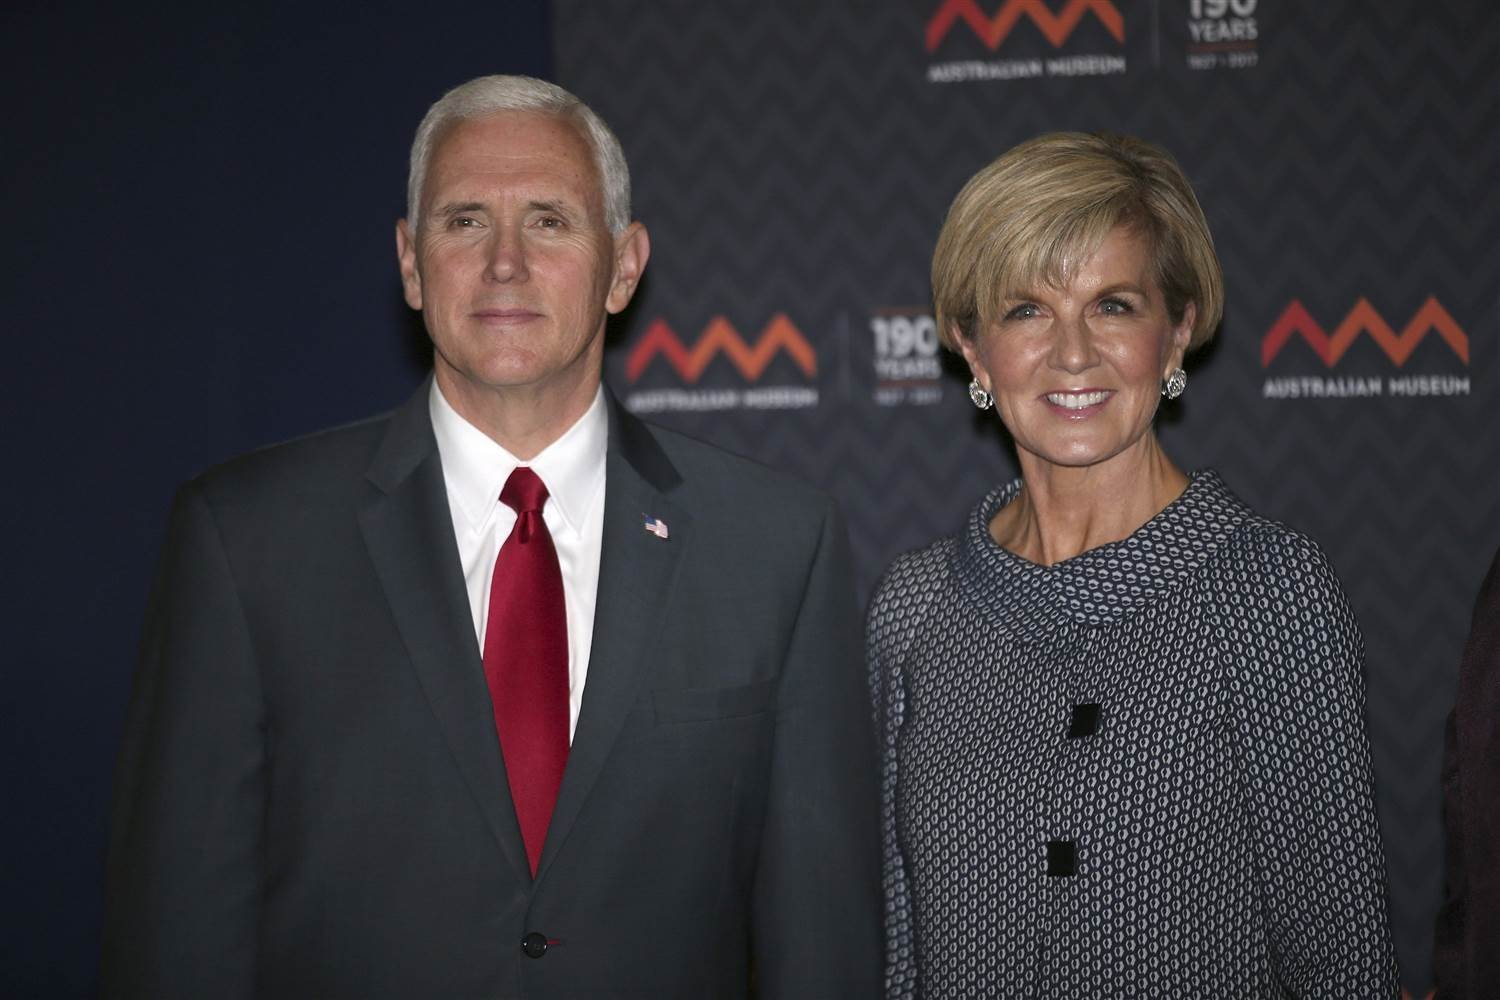 Vice President Mike Pence and Australian Foreign Minister Julie Bishop pose for a photo during a visit to the Australian Museum in Sydney, Saturday, April 22. David Moir / AP